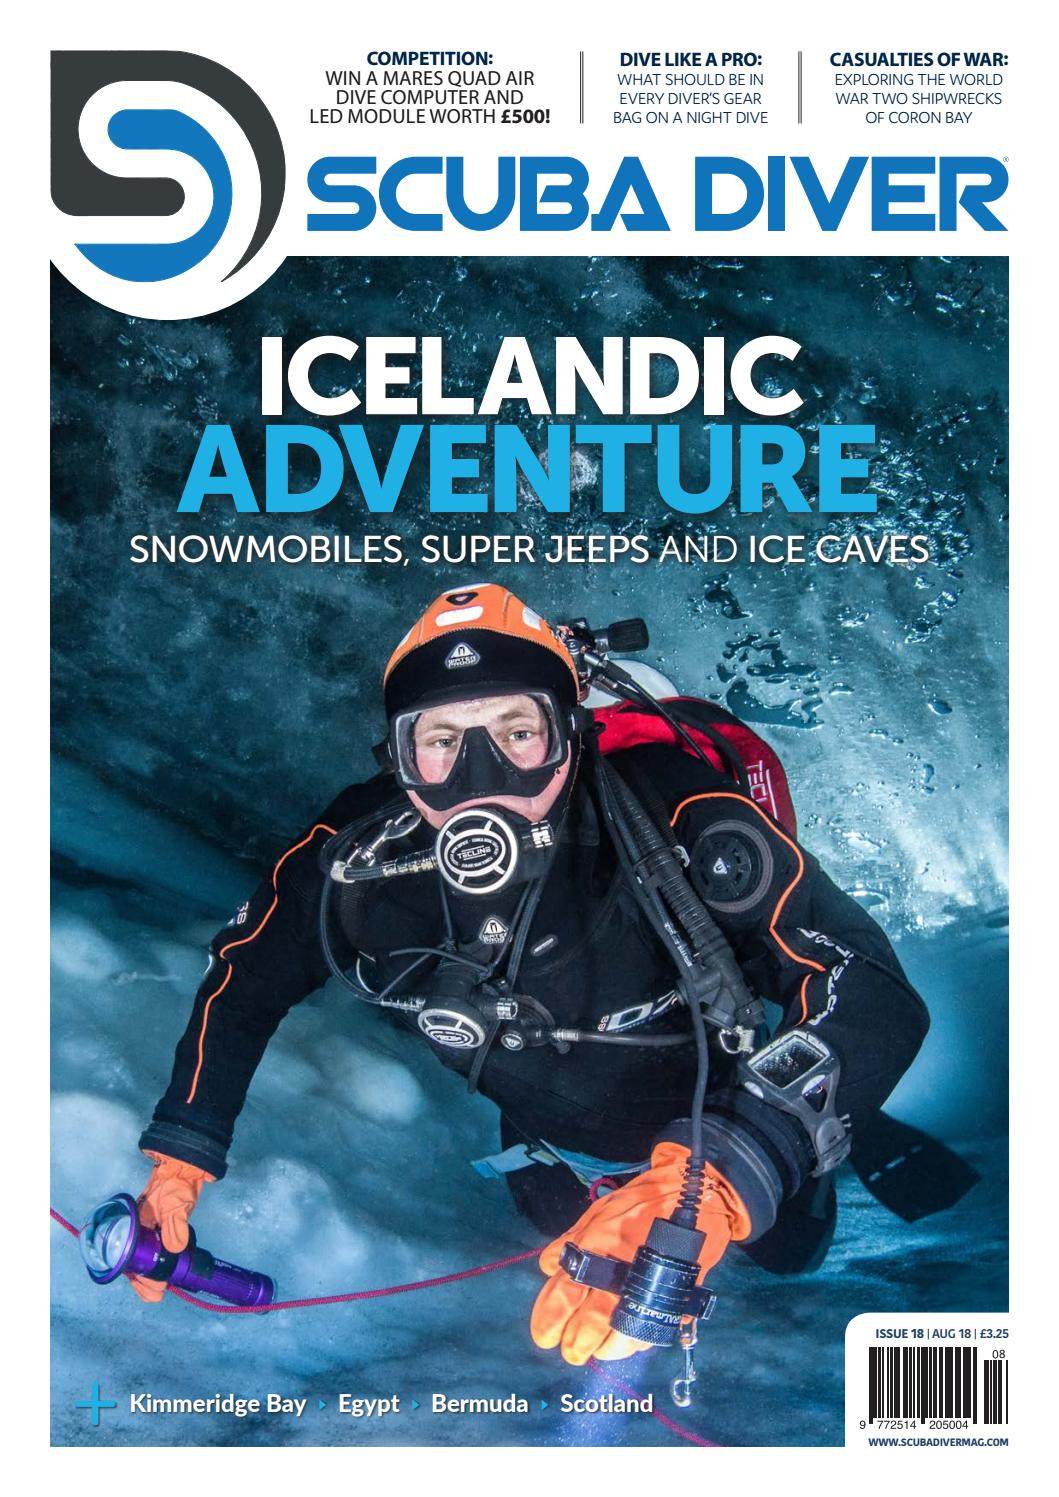 48918aa06635 Scuba Diver UK August 18 - Issue 18 by scubadivermag - issuu